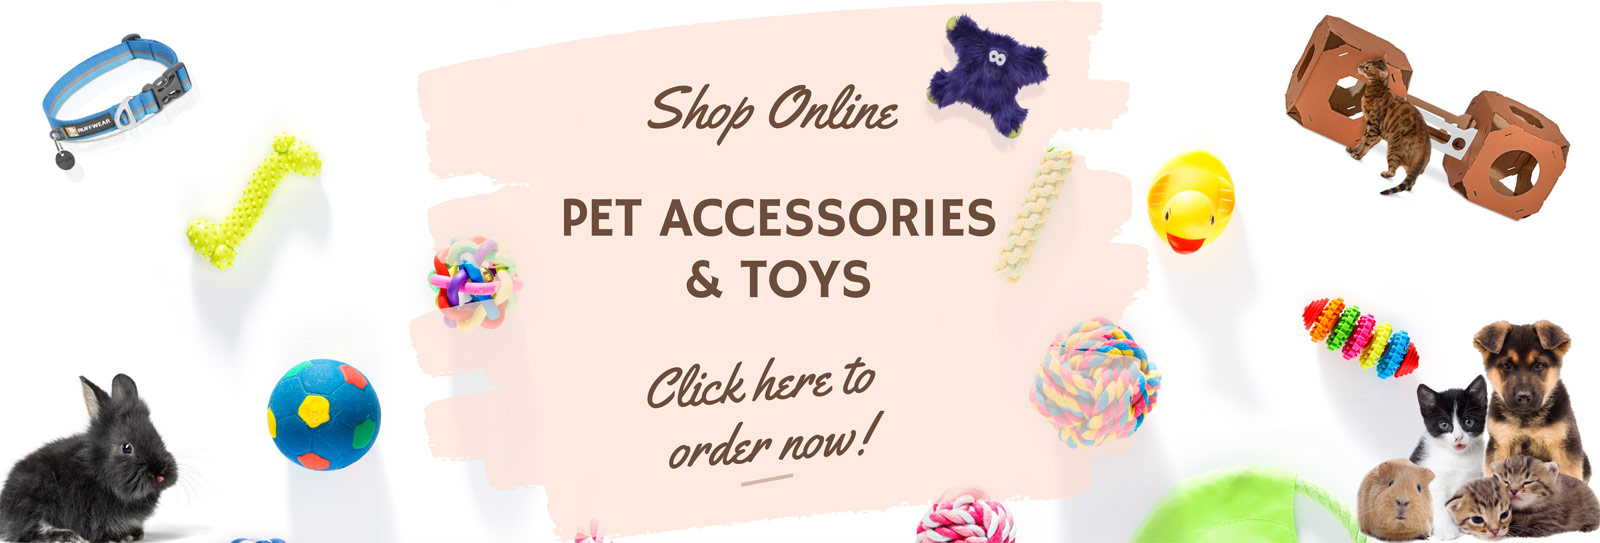 Pet Accessories & Toys